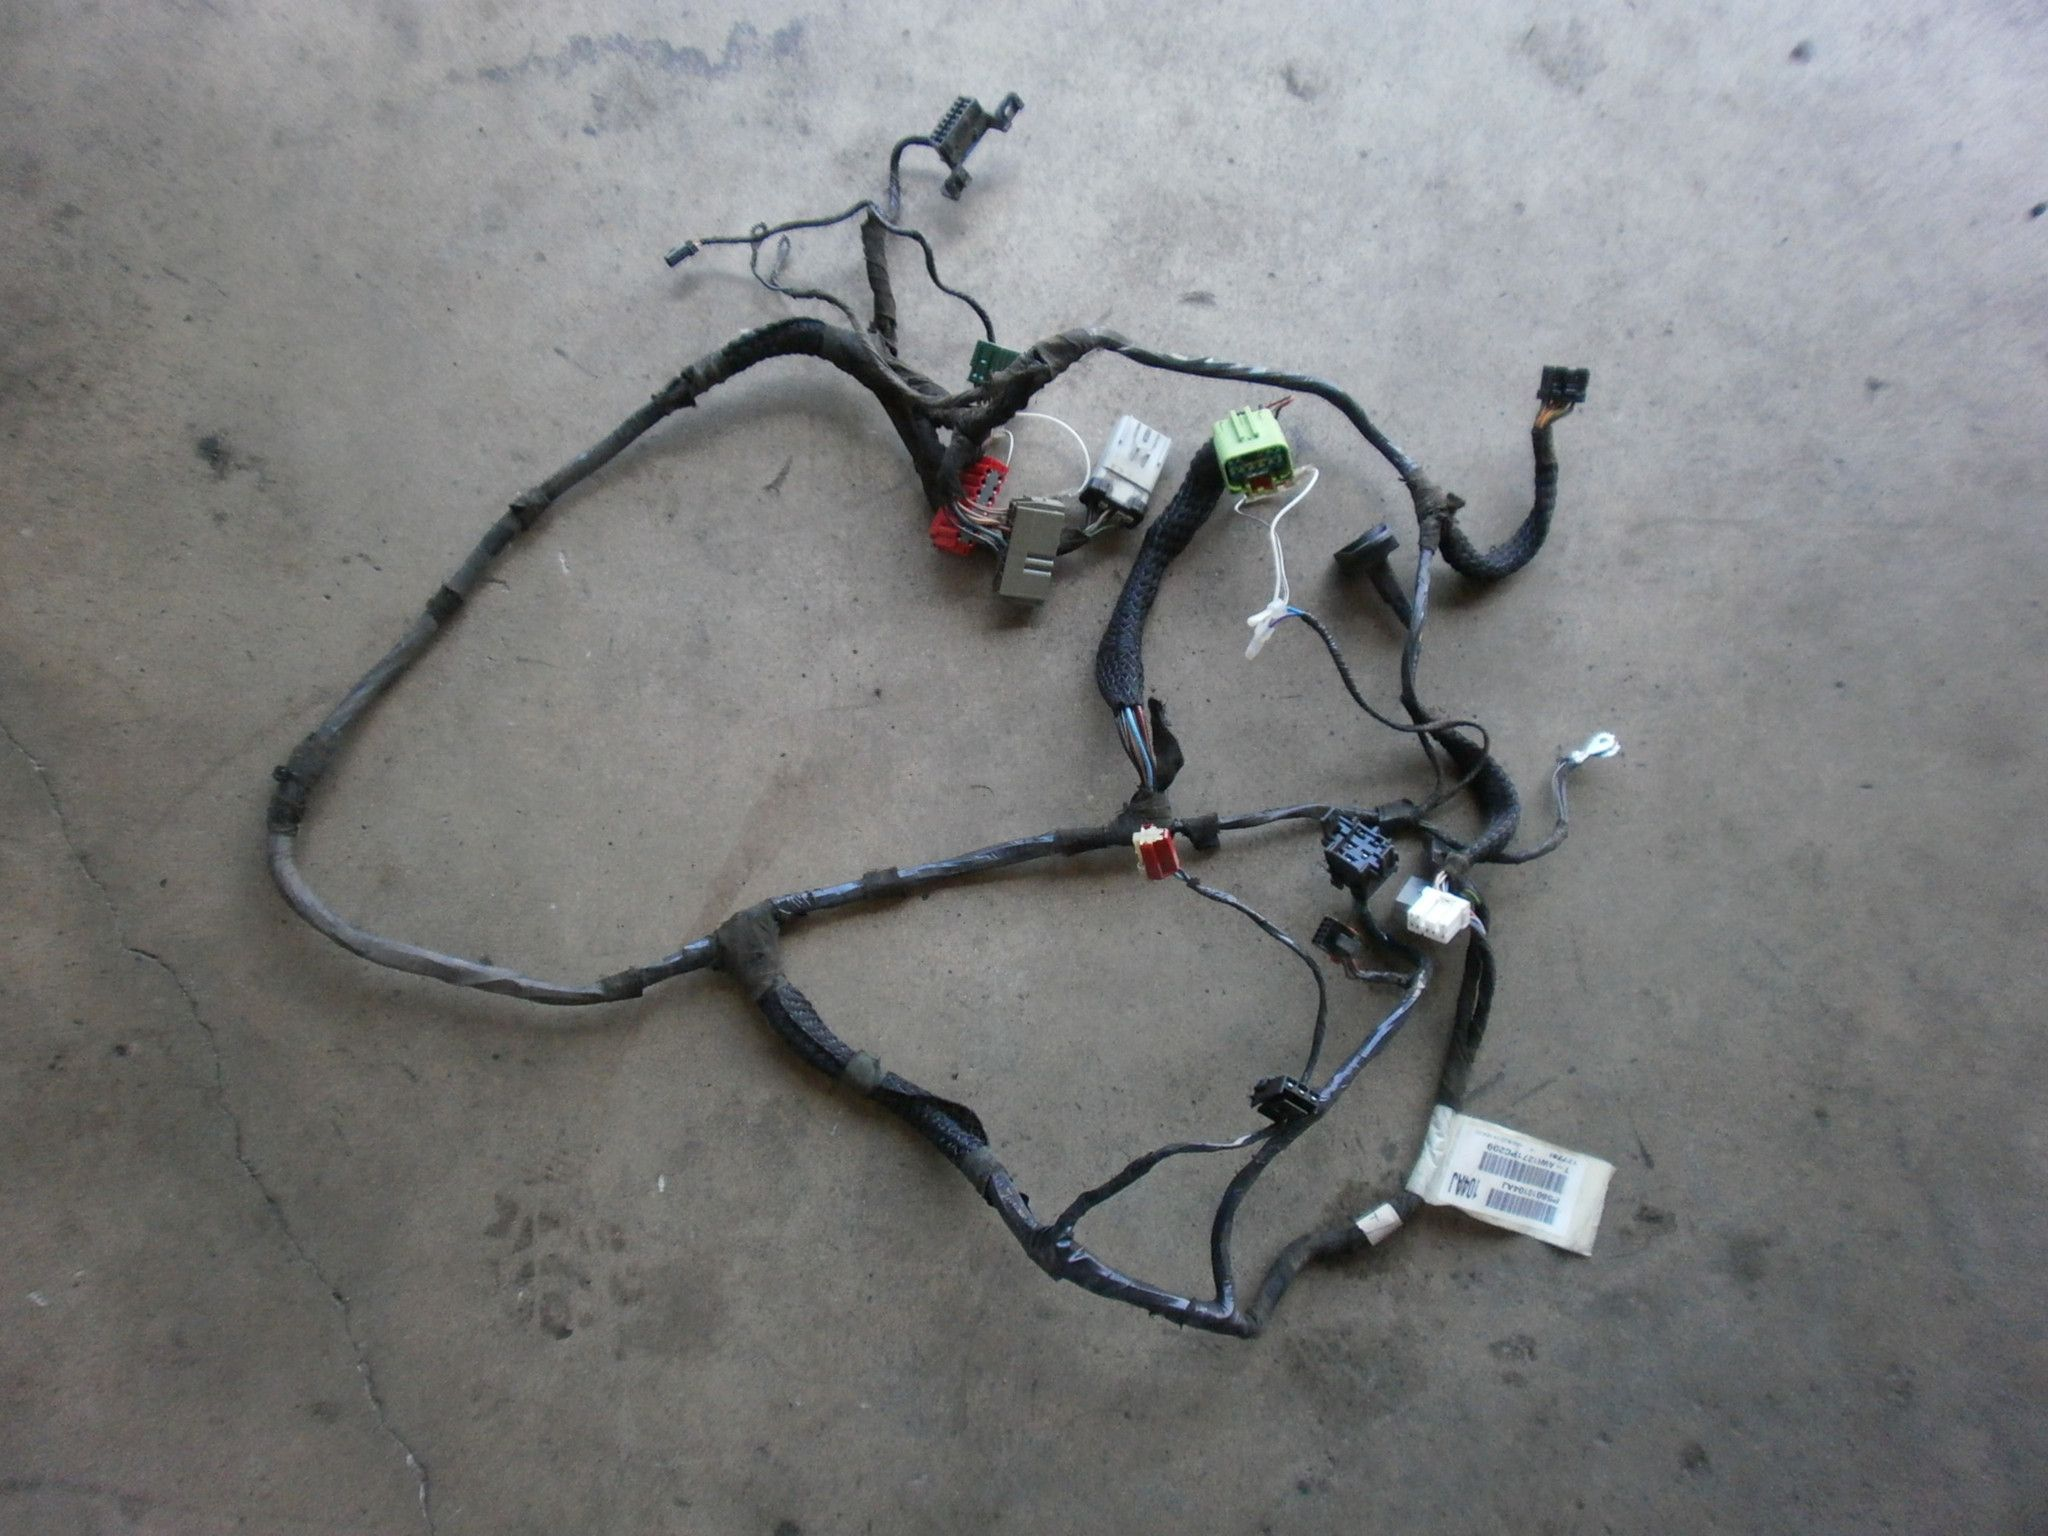 Jeep Wrangler Tj Instrument Panel Wiring Harness 2001 P56010104aj Oem Good Used 24 40